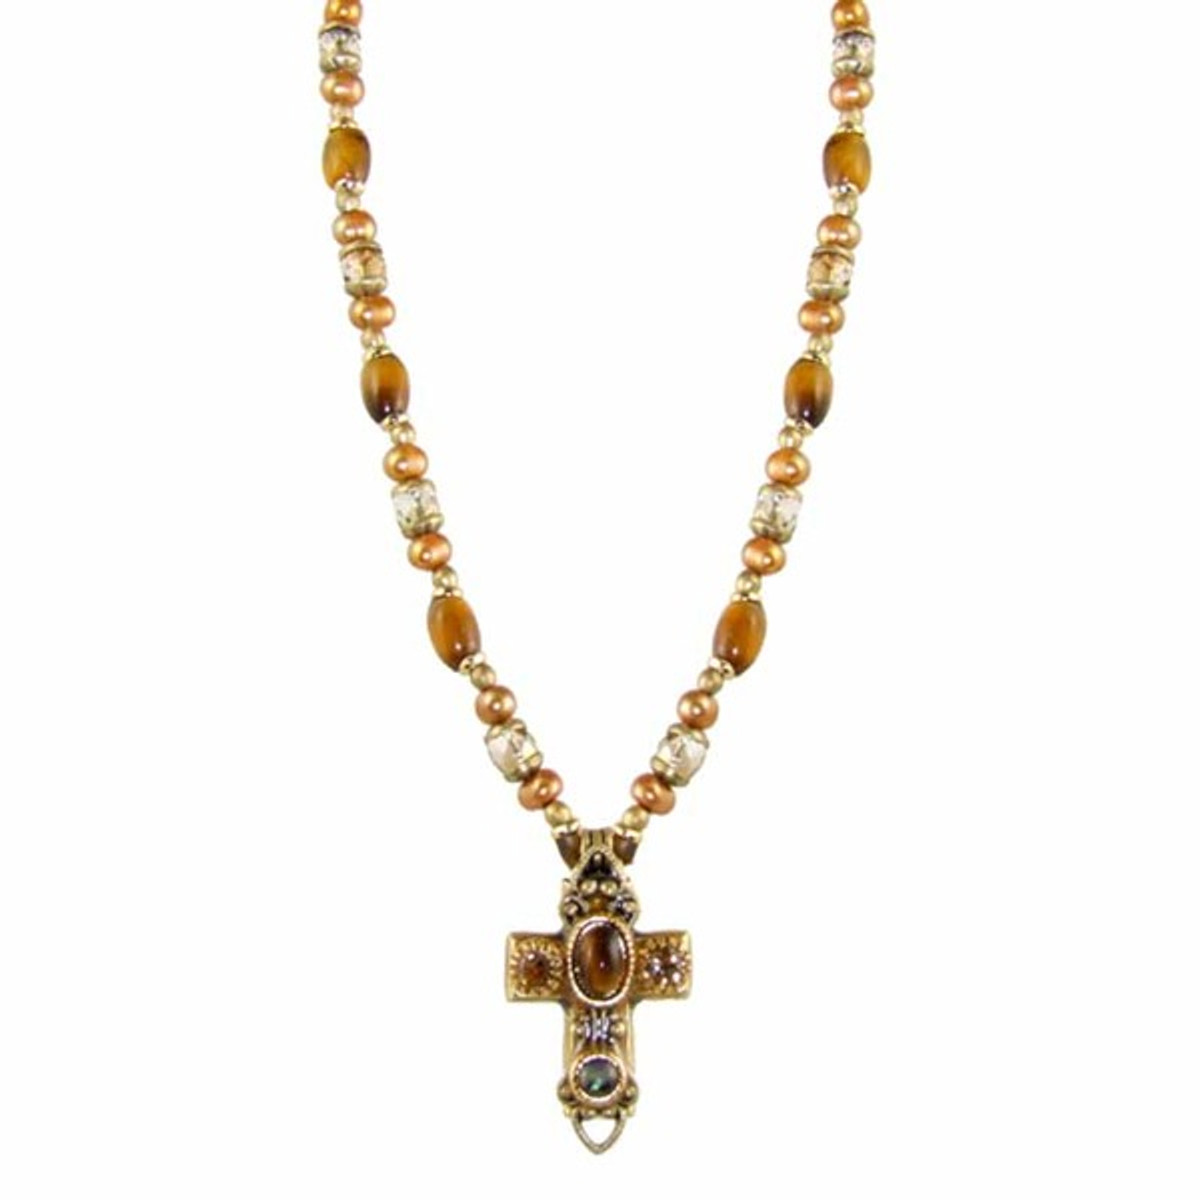 Michal Golan Small Cross Necklace